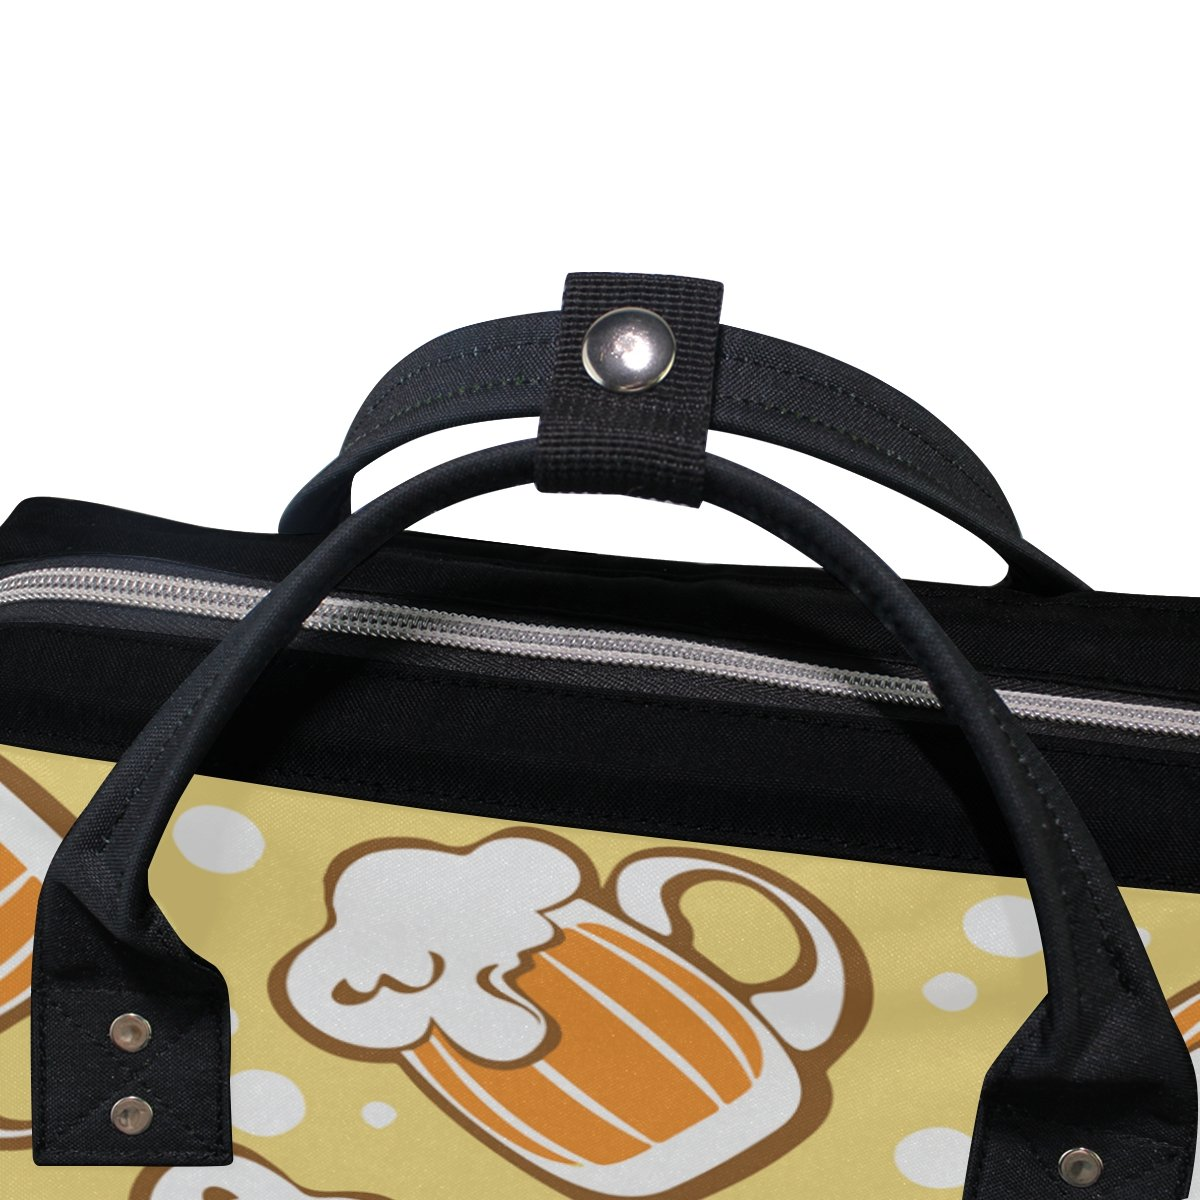 imobaby Stylized Beer Mugs Pattern Changing Bags Large Capacity Handbags Canvas Shoulder Bag Backpack